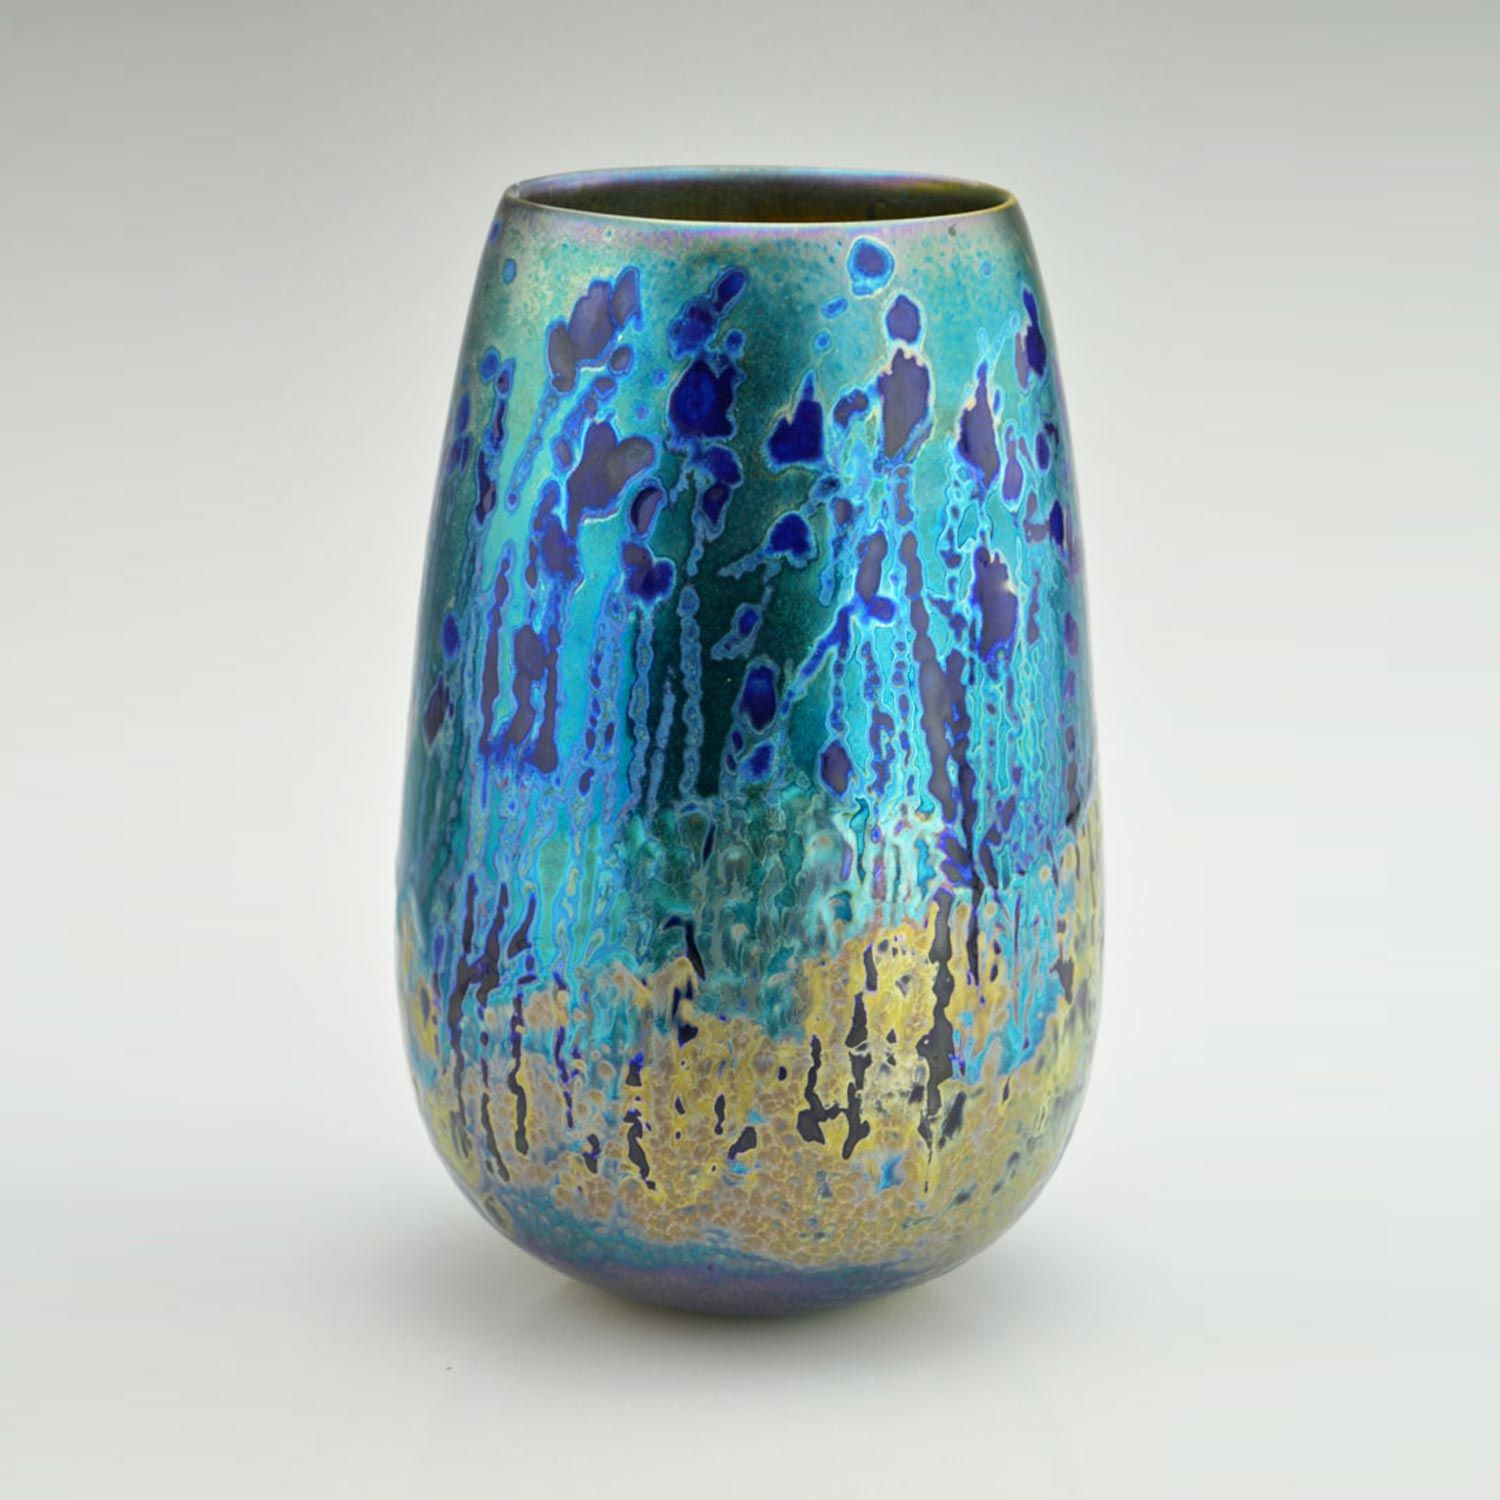 Greg daly night glow 2015 lustre glaze ceramic sabbia gallery sabbia gallery represents australia and new zealands finest artists working in contemporary studio glass and ceramics reviewsmspy